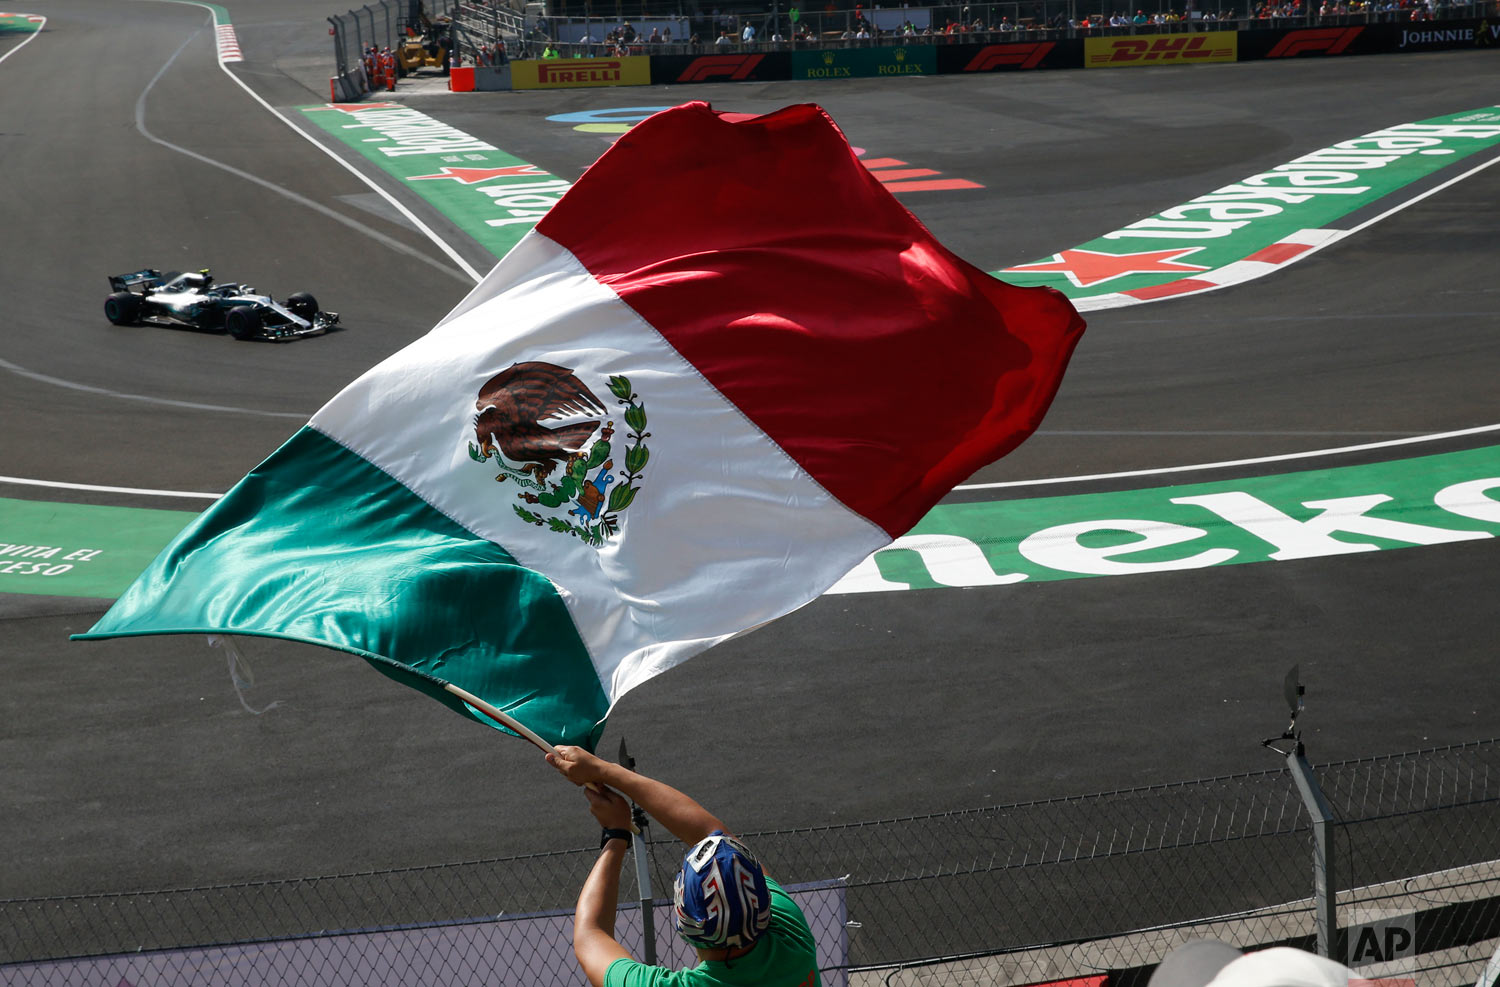 Mercedes driver Lewis Hamilton, from Britain, drives in a practice run for the upcoming Formula One Mexico Grand Prix auto race, as a fan waves a Mexican flag at the Hermanos Rodriguez racetrack in Mexico City, Oct. 26, 2018. (AP Photo/Marco Ugarte)